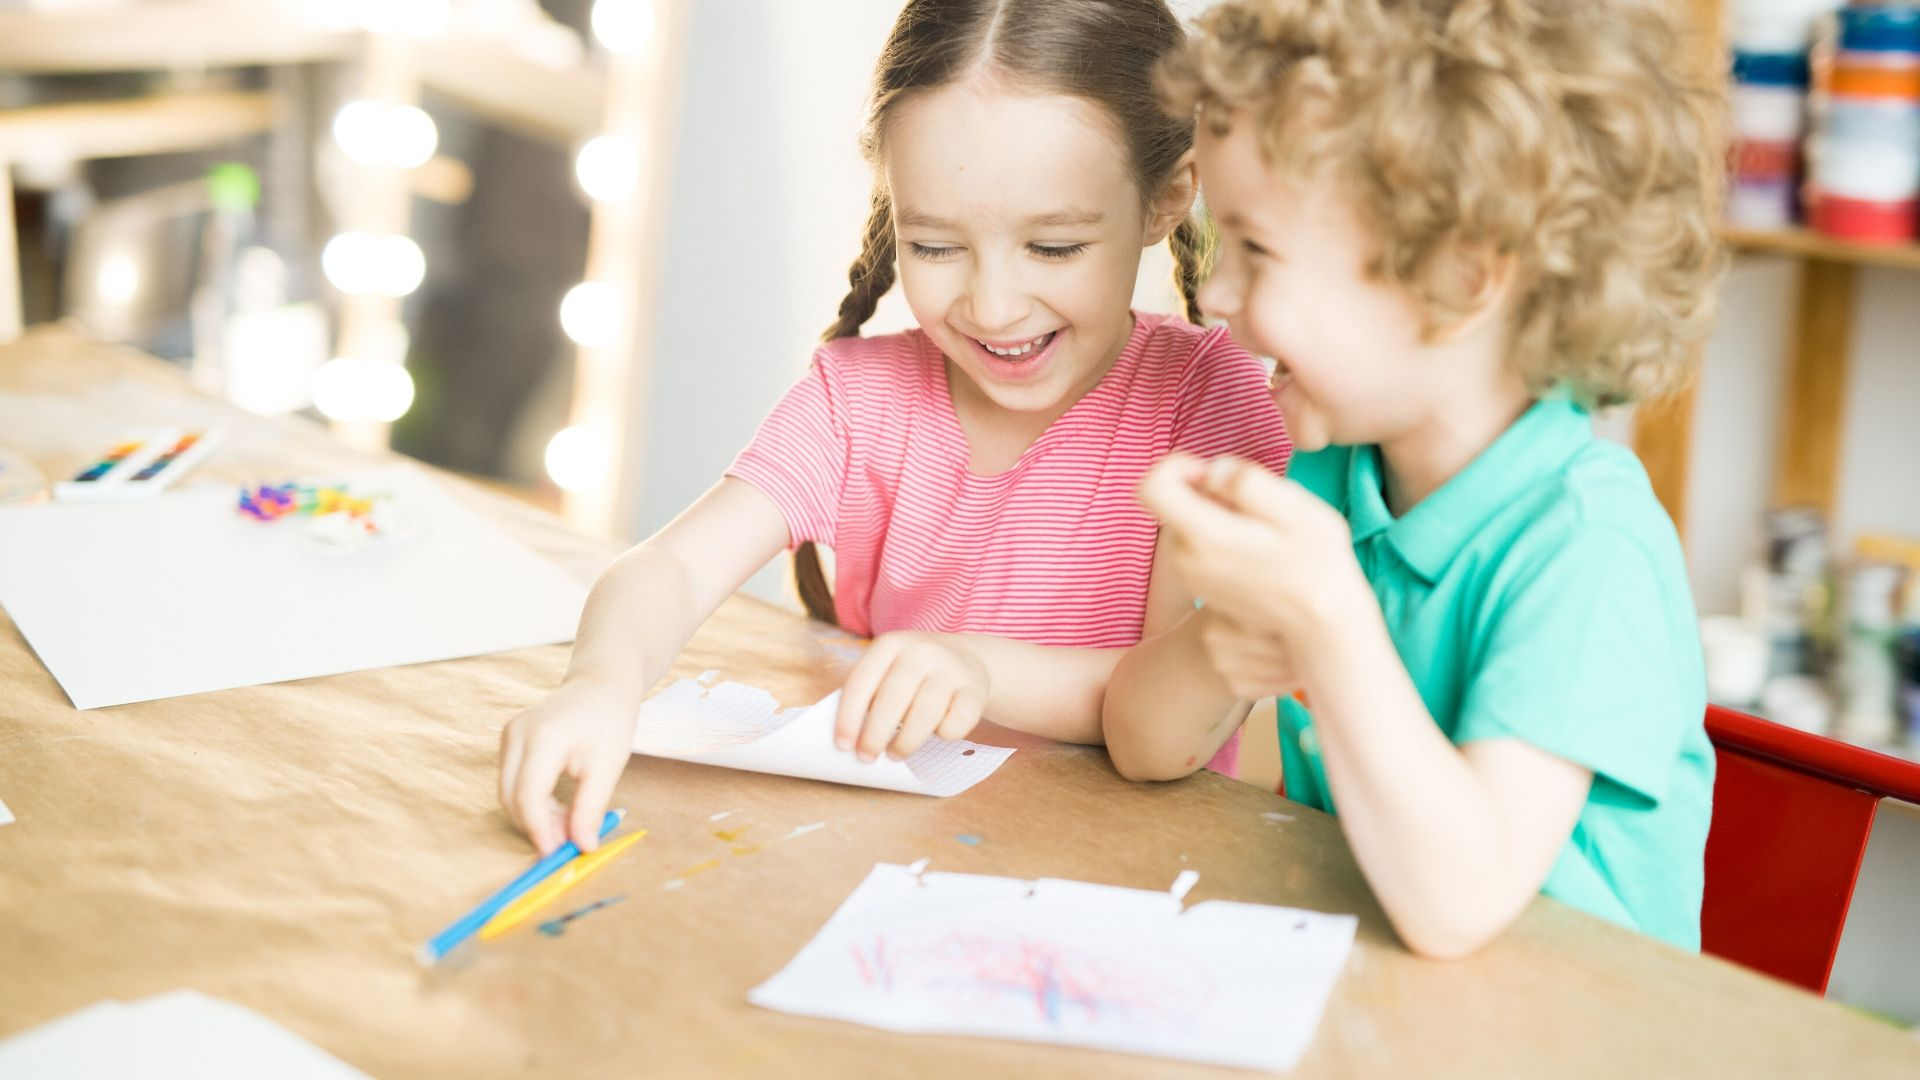 two children laughing at a table while drawing